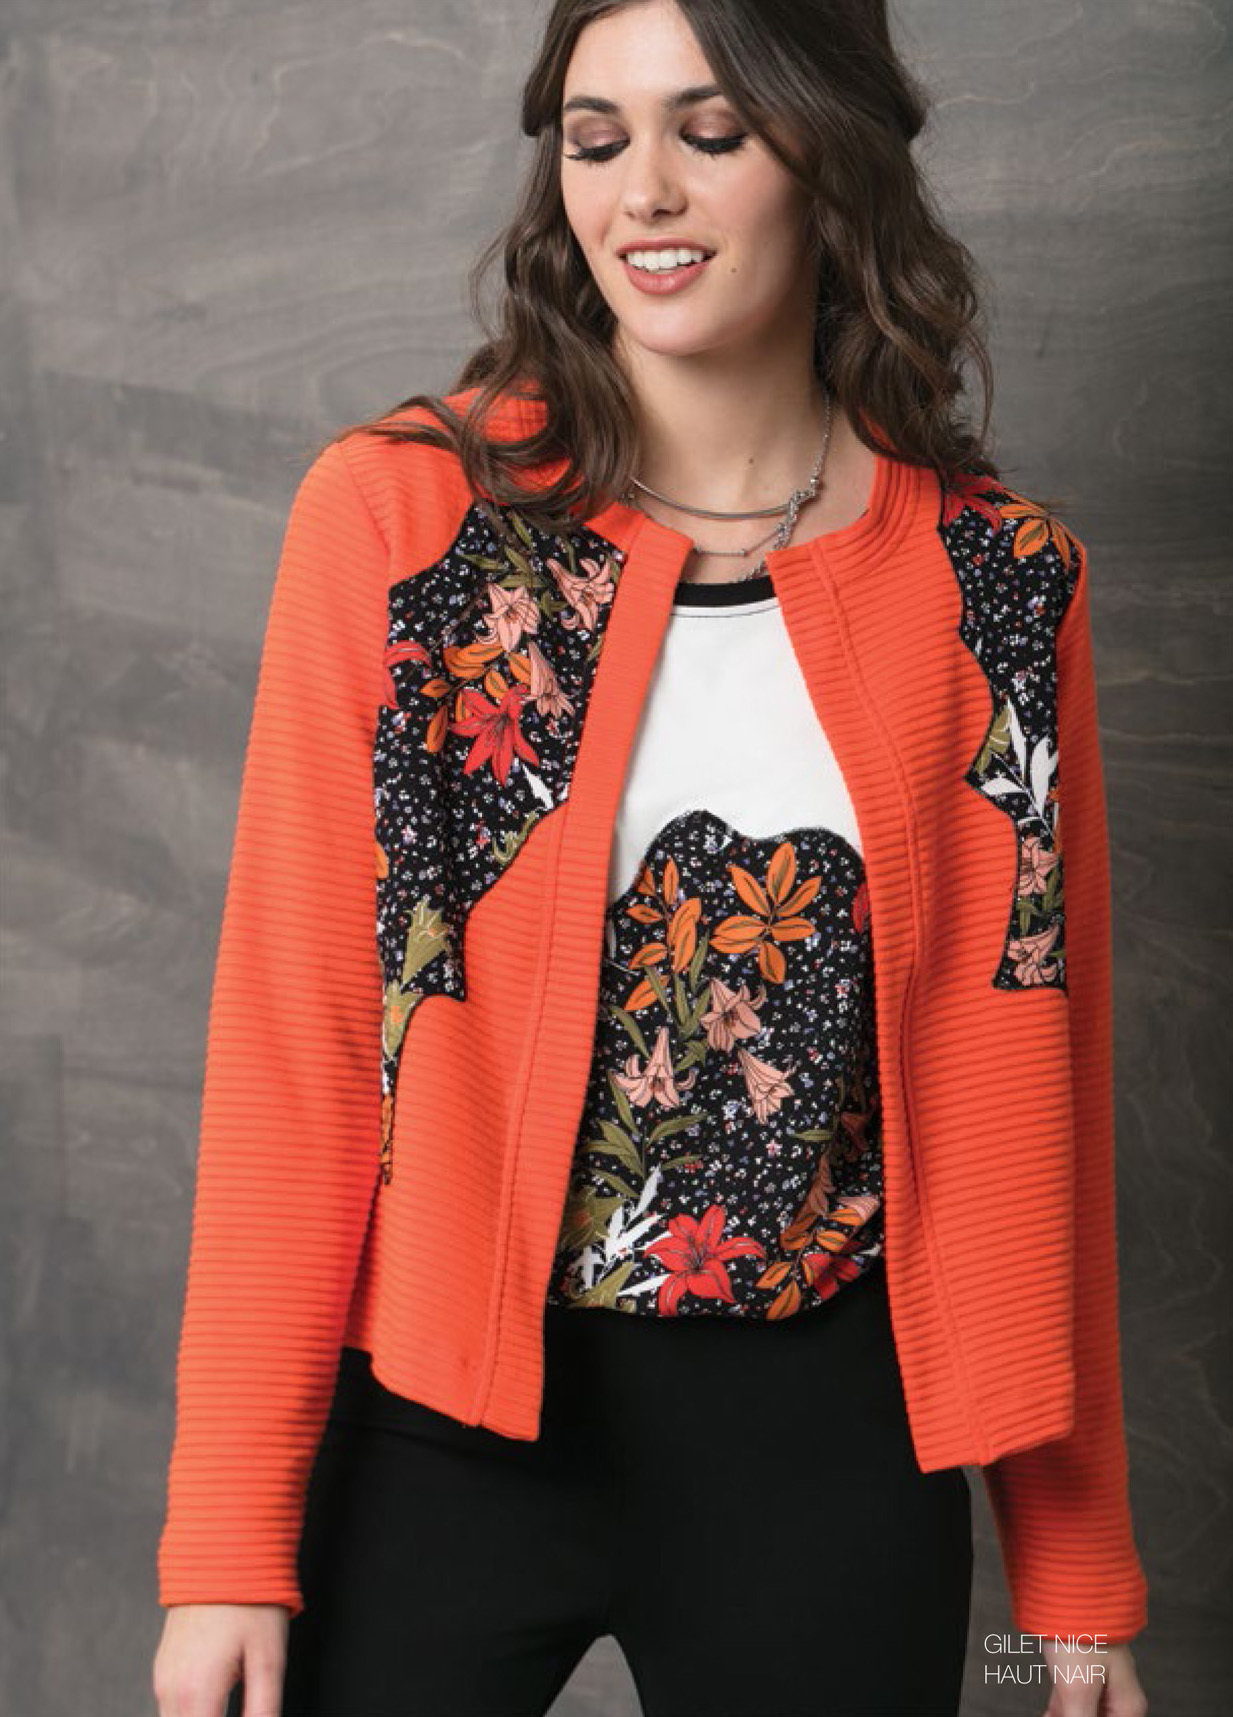 Maloka: Orange Rose Asymmetrical Bodice Short Jacket (2 Left in Black!) MK_NICE